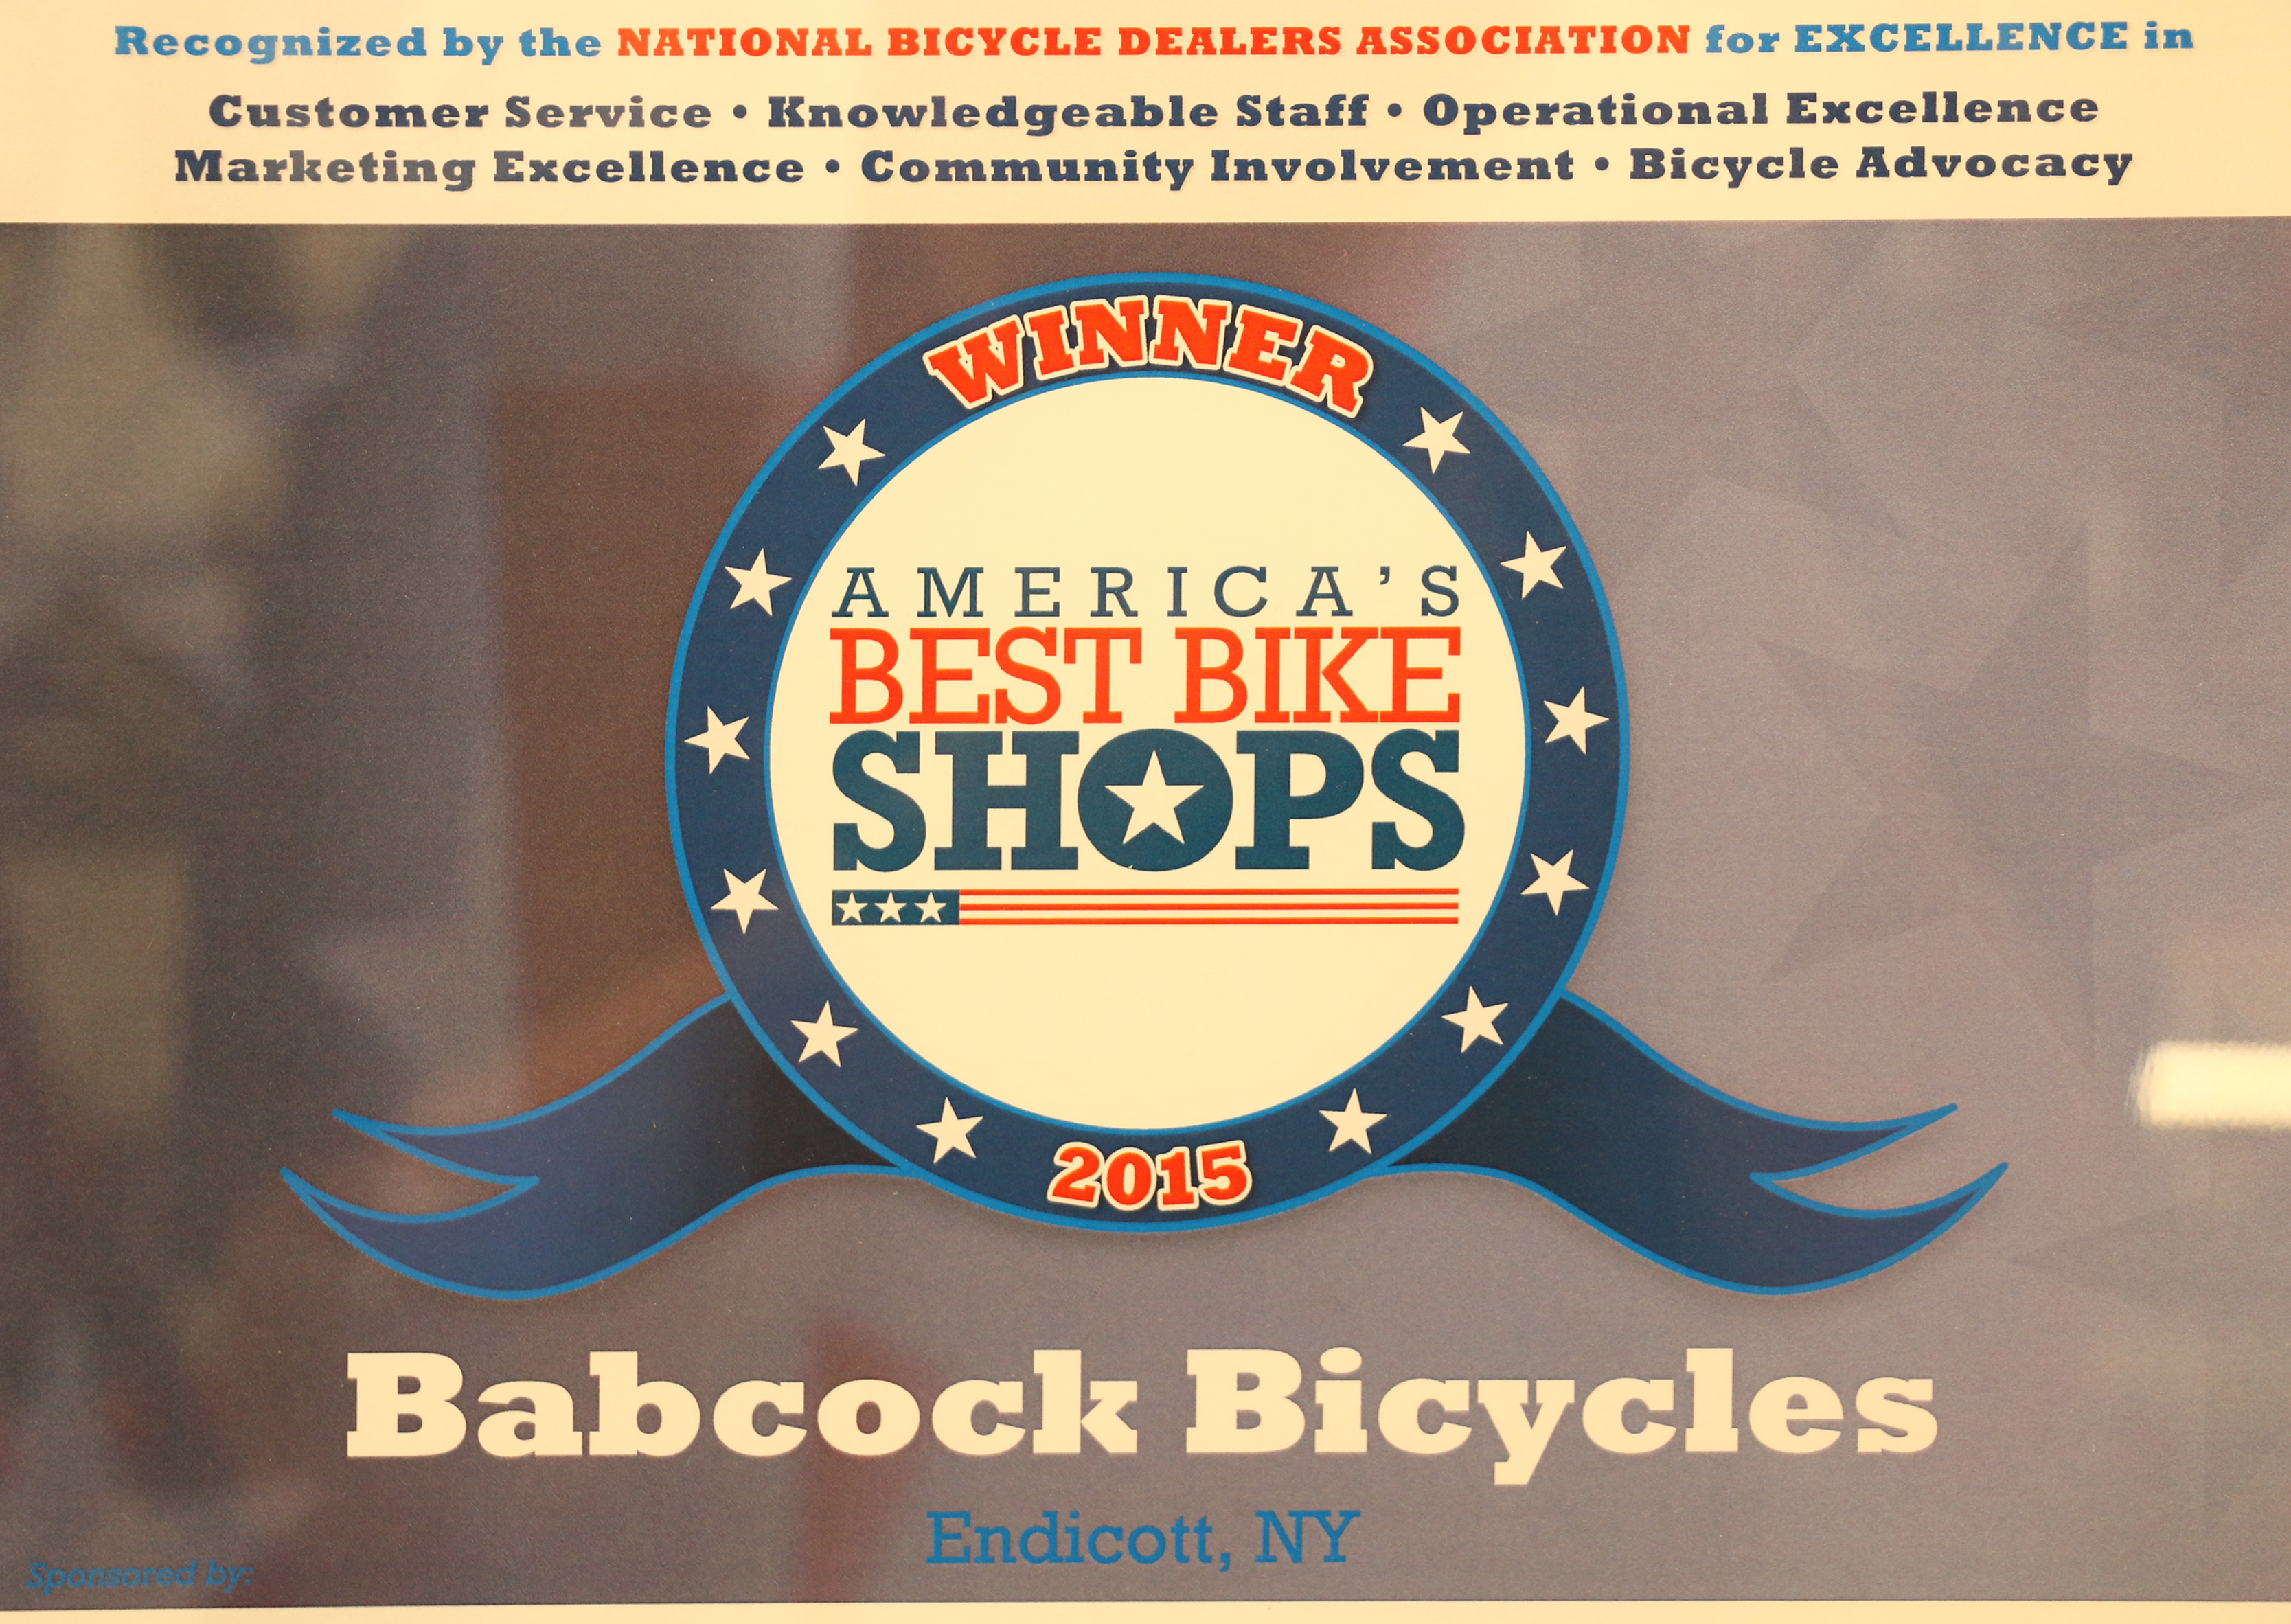 Best Bike Shops